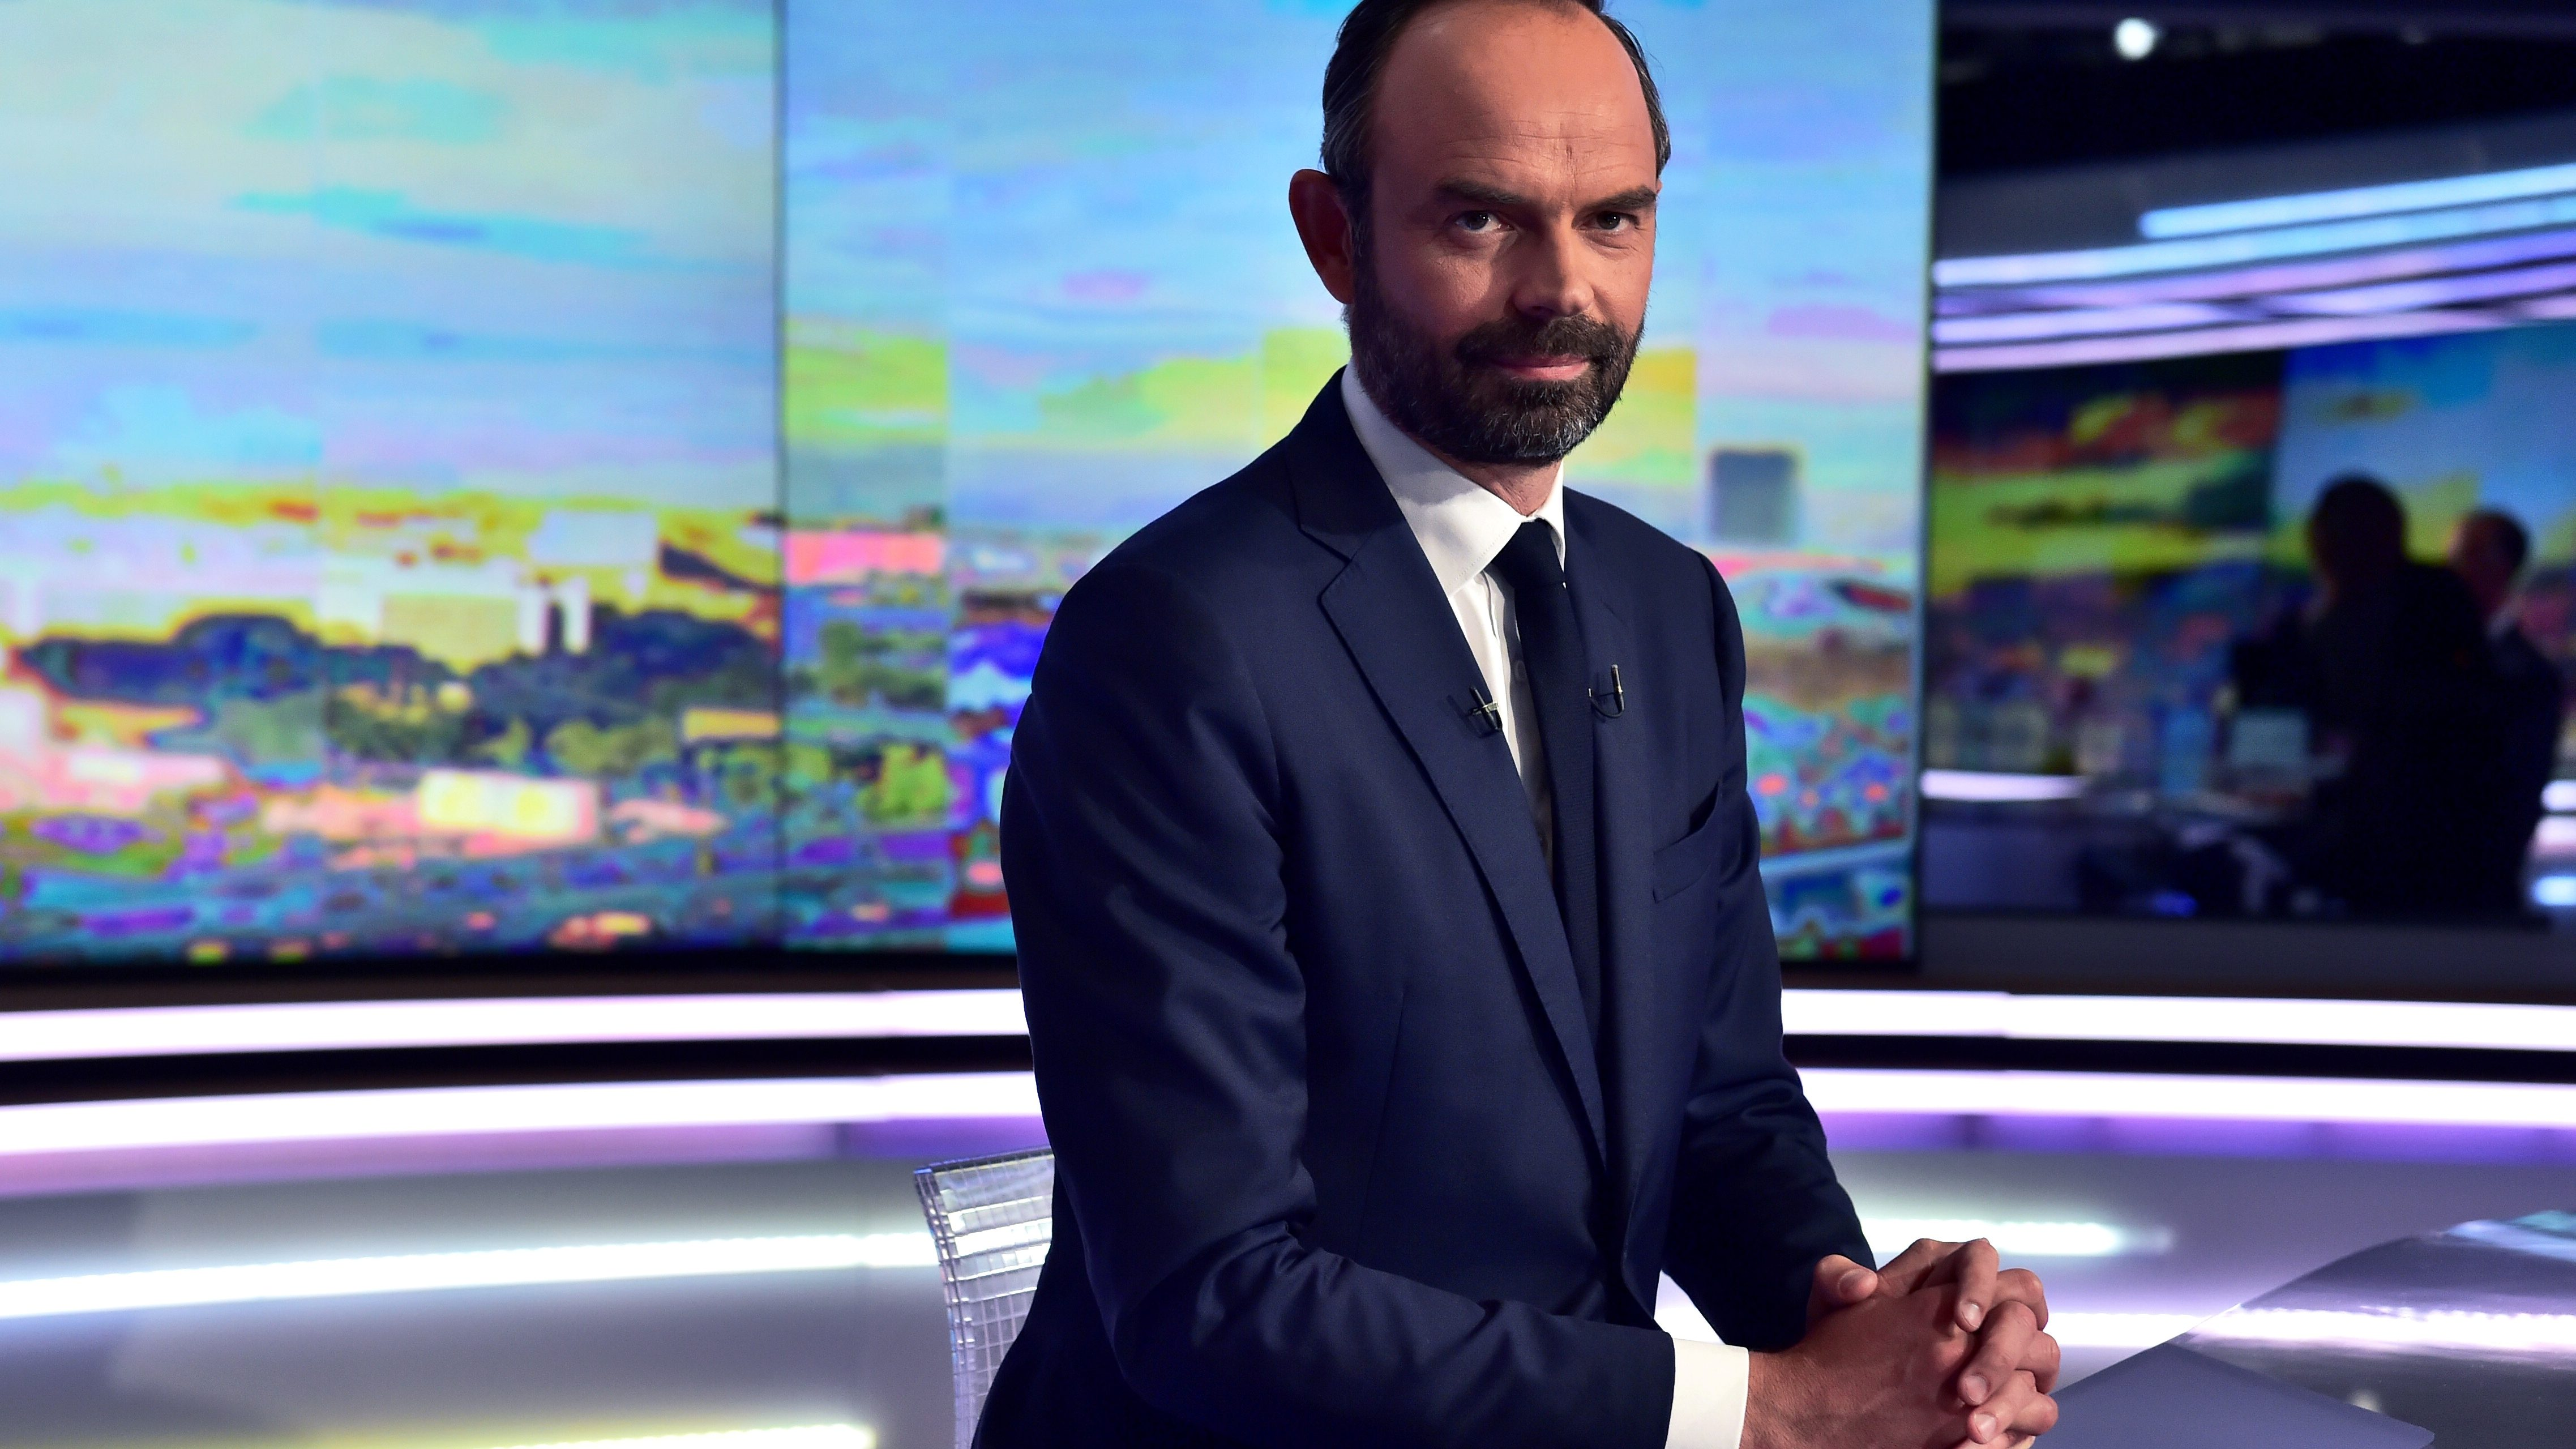 Edouard Philippe, France's newly-appointed Prime Minister, poses prior to taking part in the prime time news broadcast of French TV channel TF1, in their studios in Boulogne-Billancourt